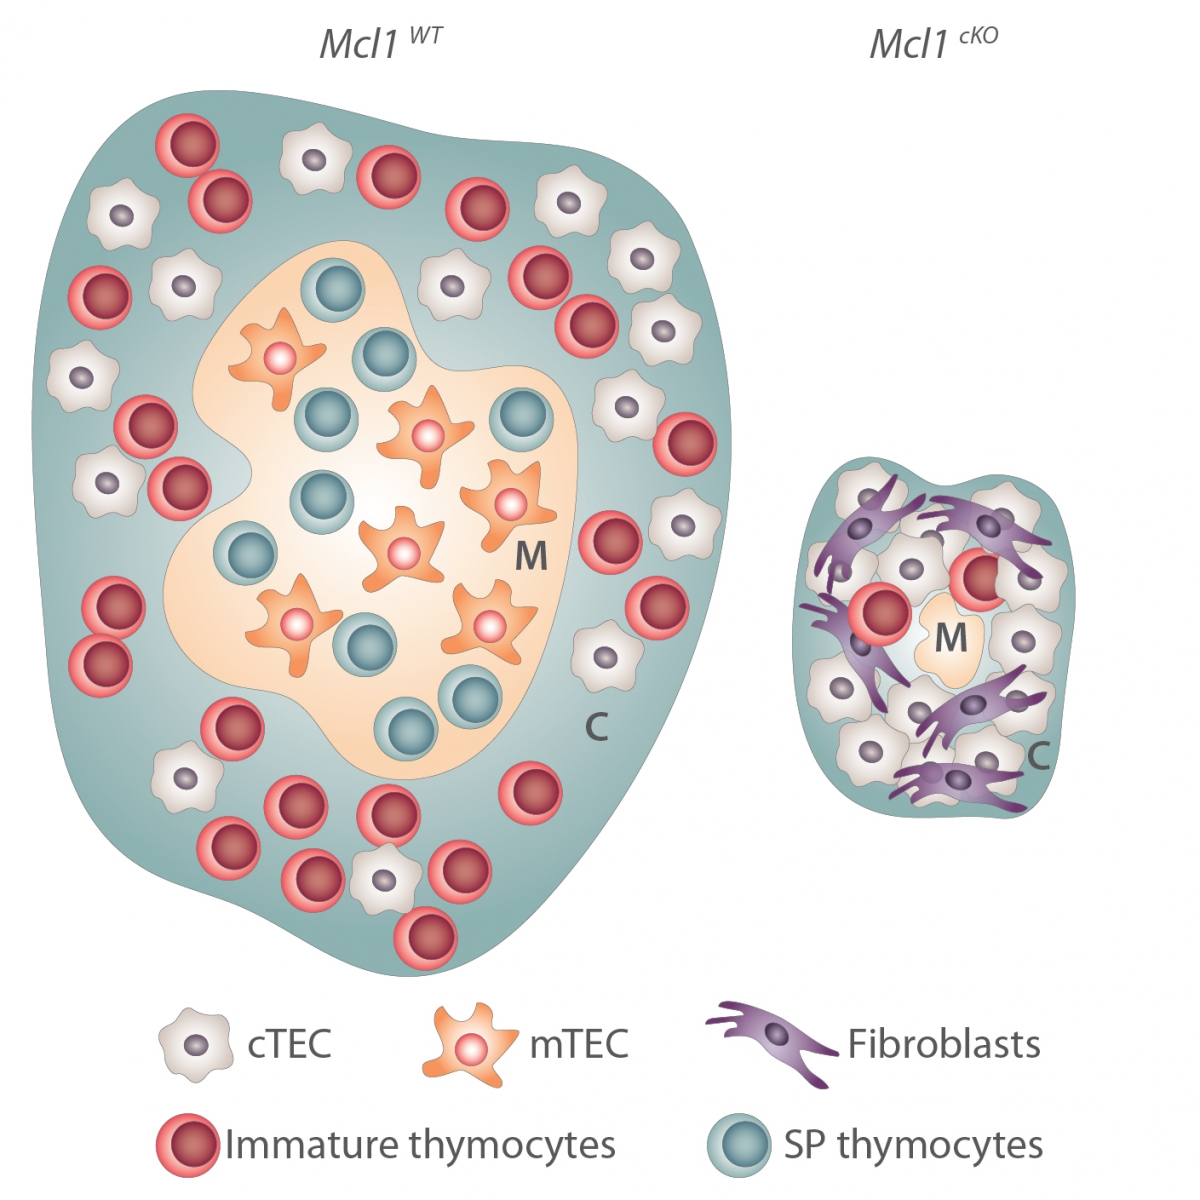 MCL-1 keeps a charming home for thymocytes